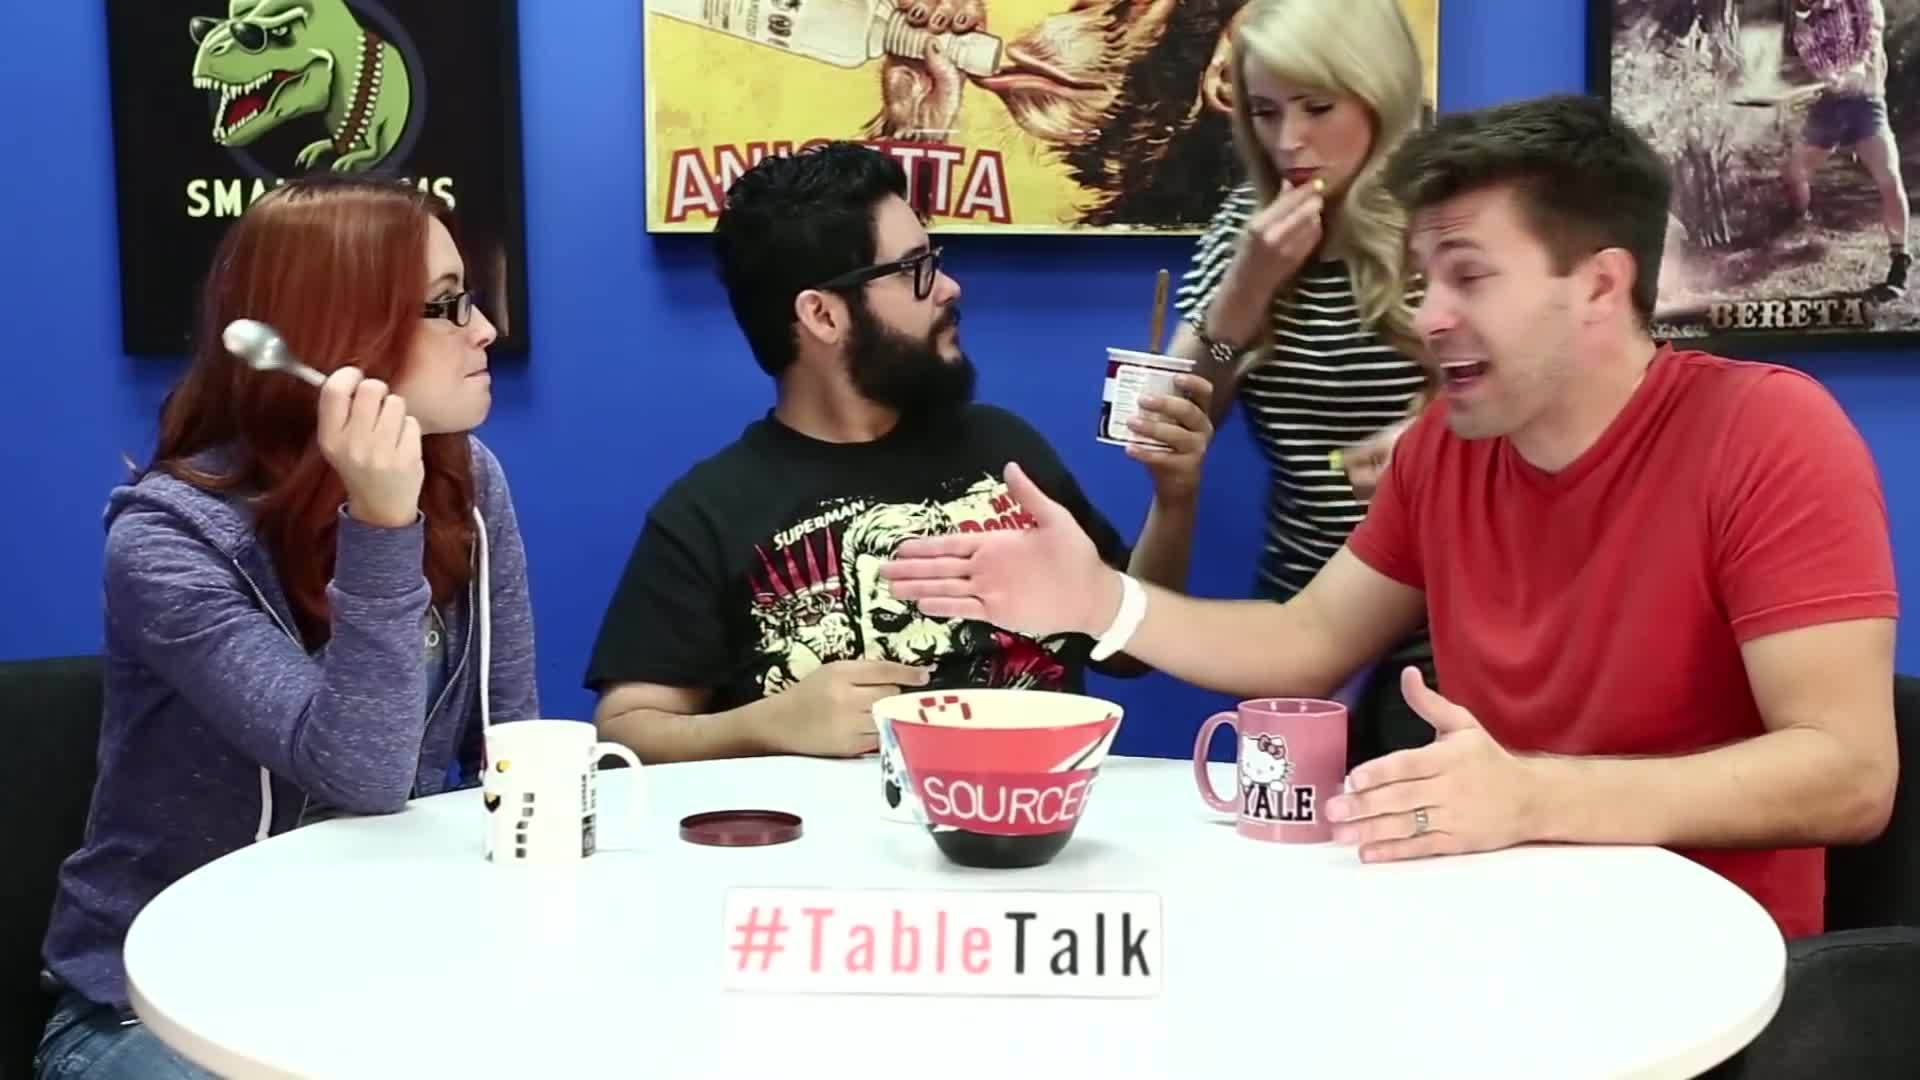 SourceFed, SourceFedNerd, leenewton, Chocolate Frosting, Madness, and Violent Video Games on #TableTalk! GIFs